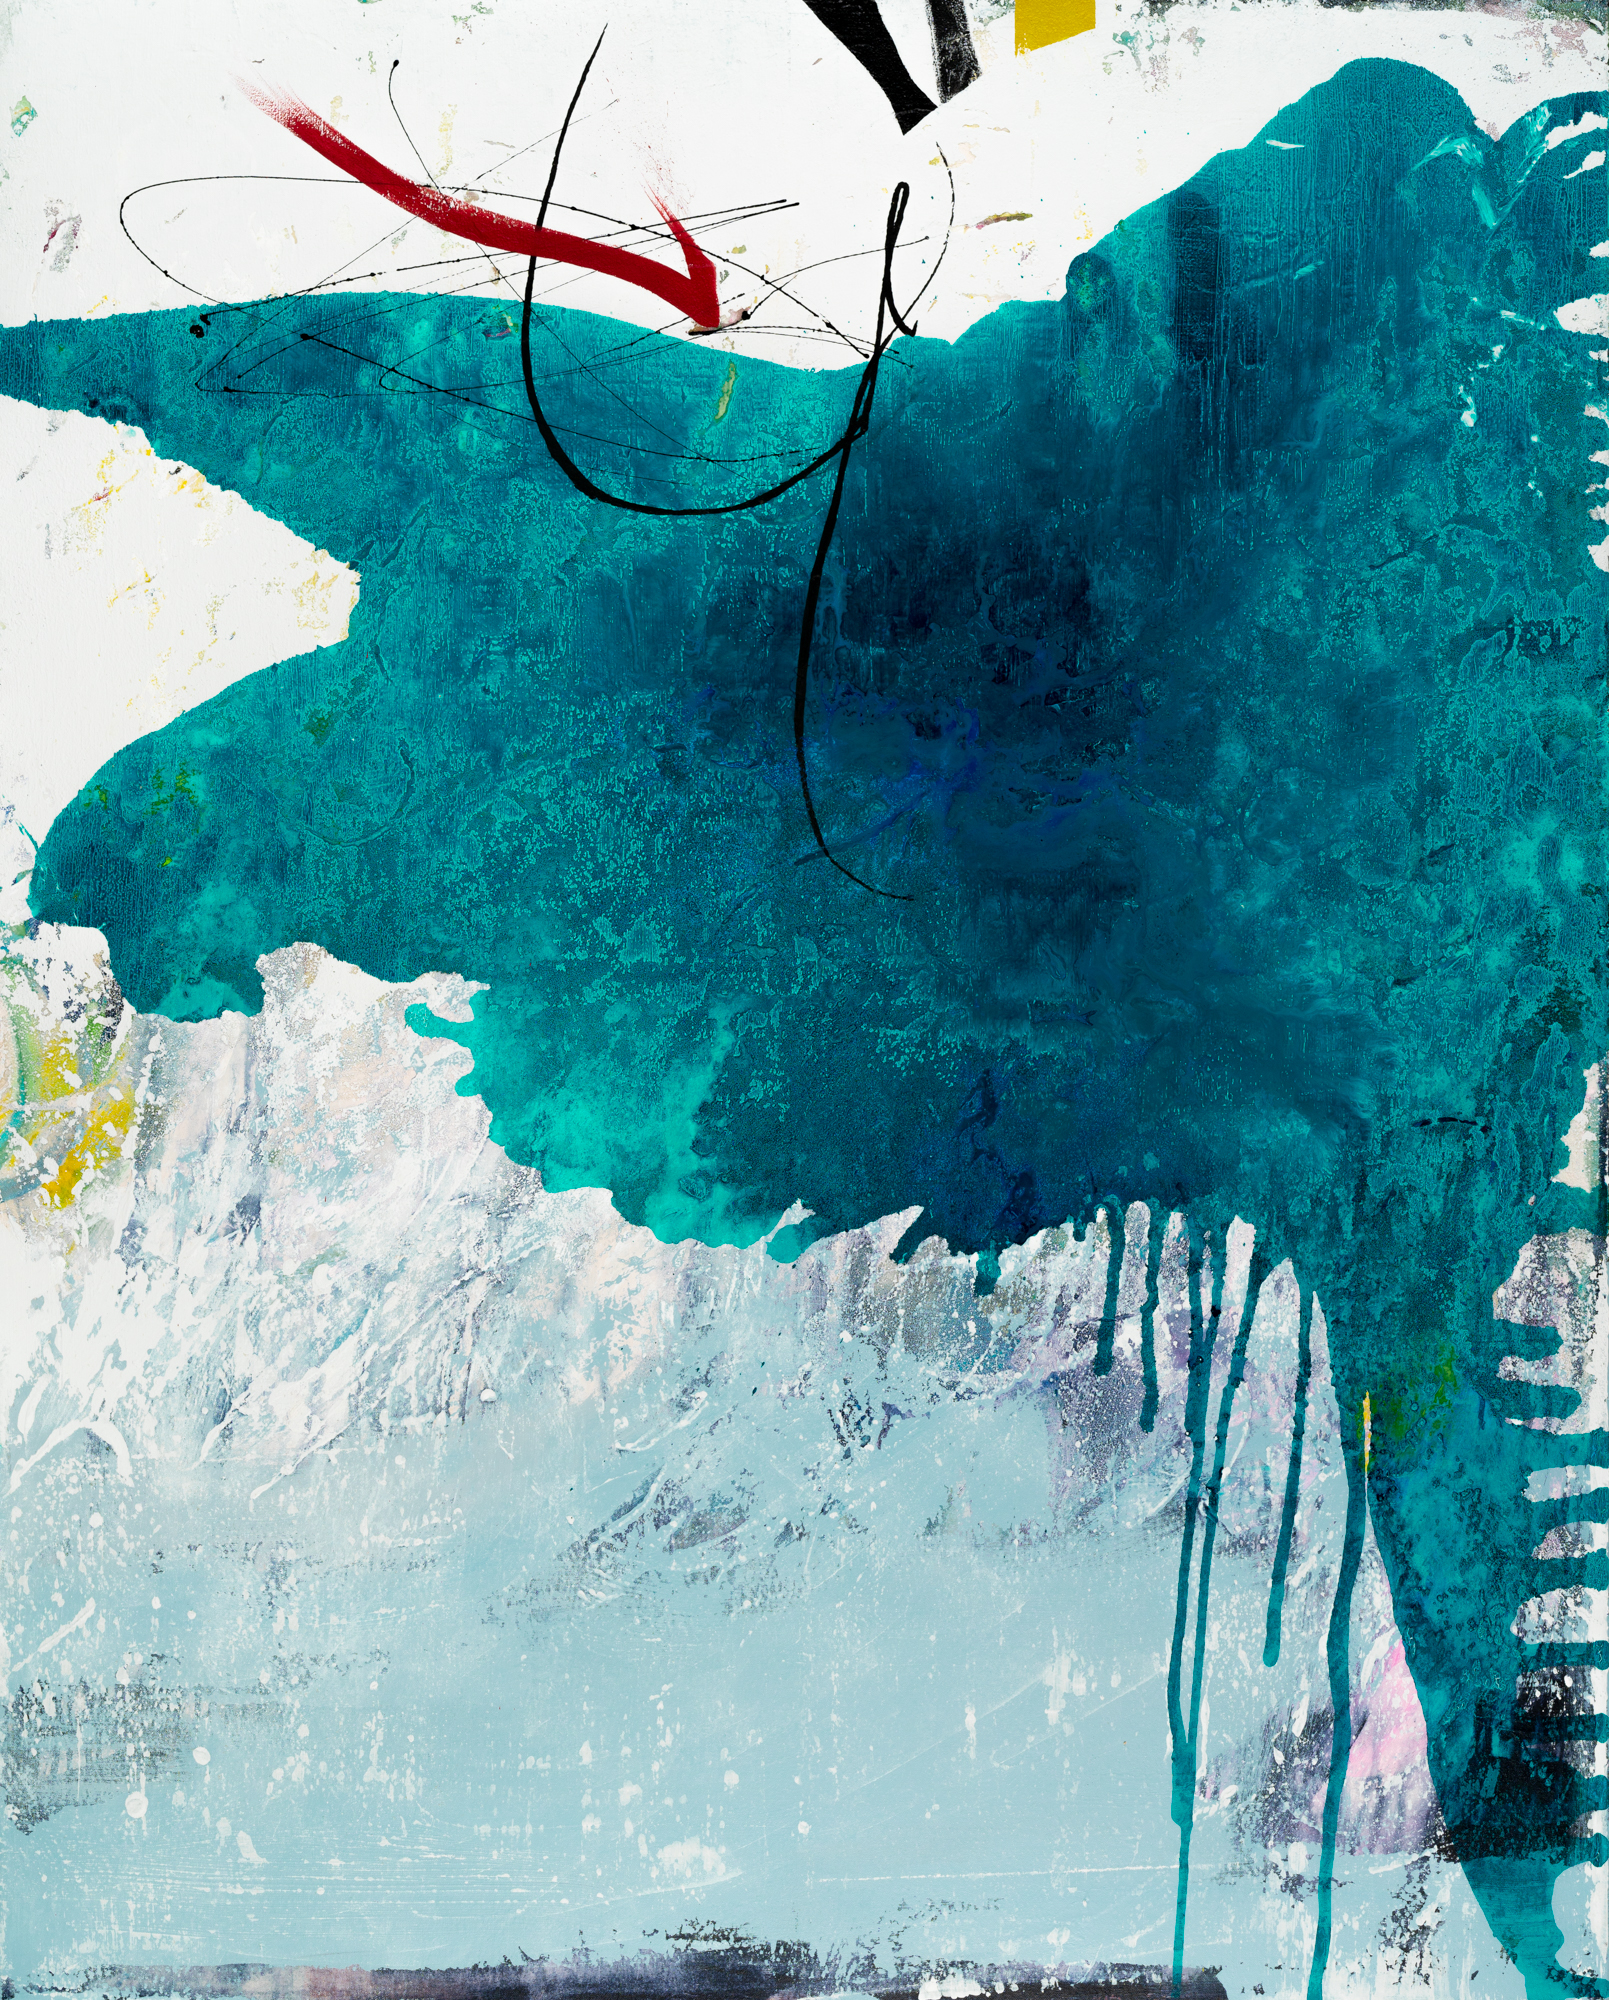 Large Contemporary Urban Abstract Expressionism Paintings and Large Loft Art Laura Letchinger DEPOT